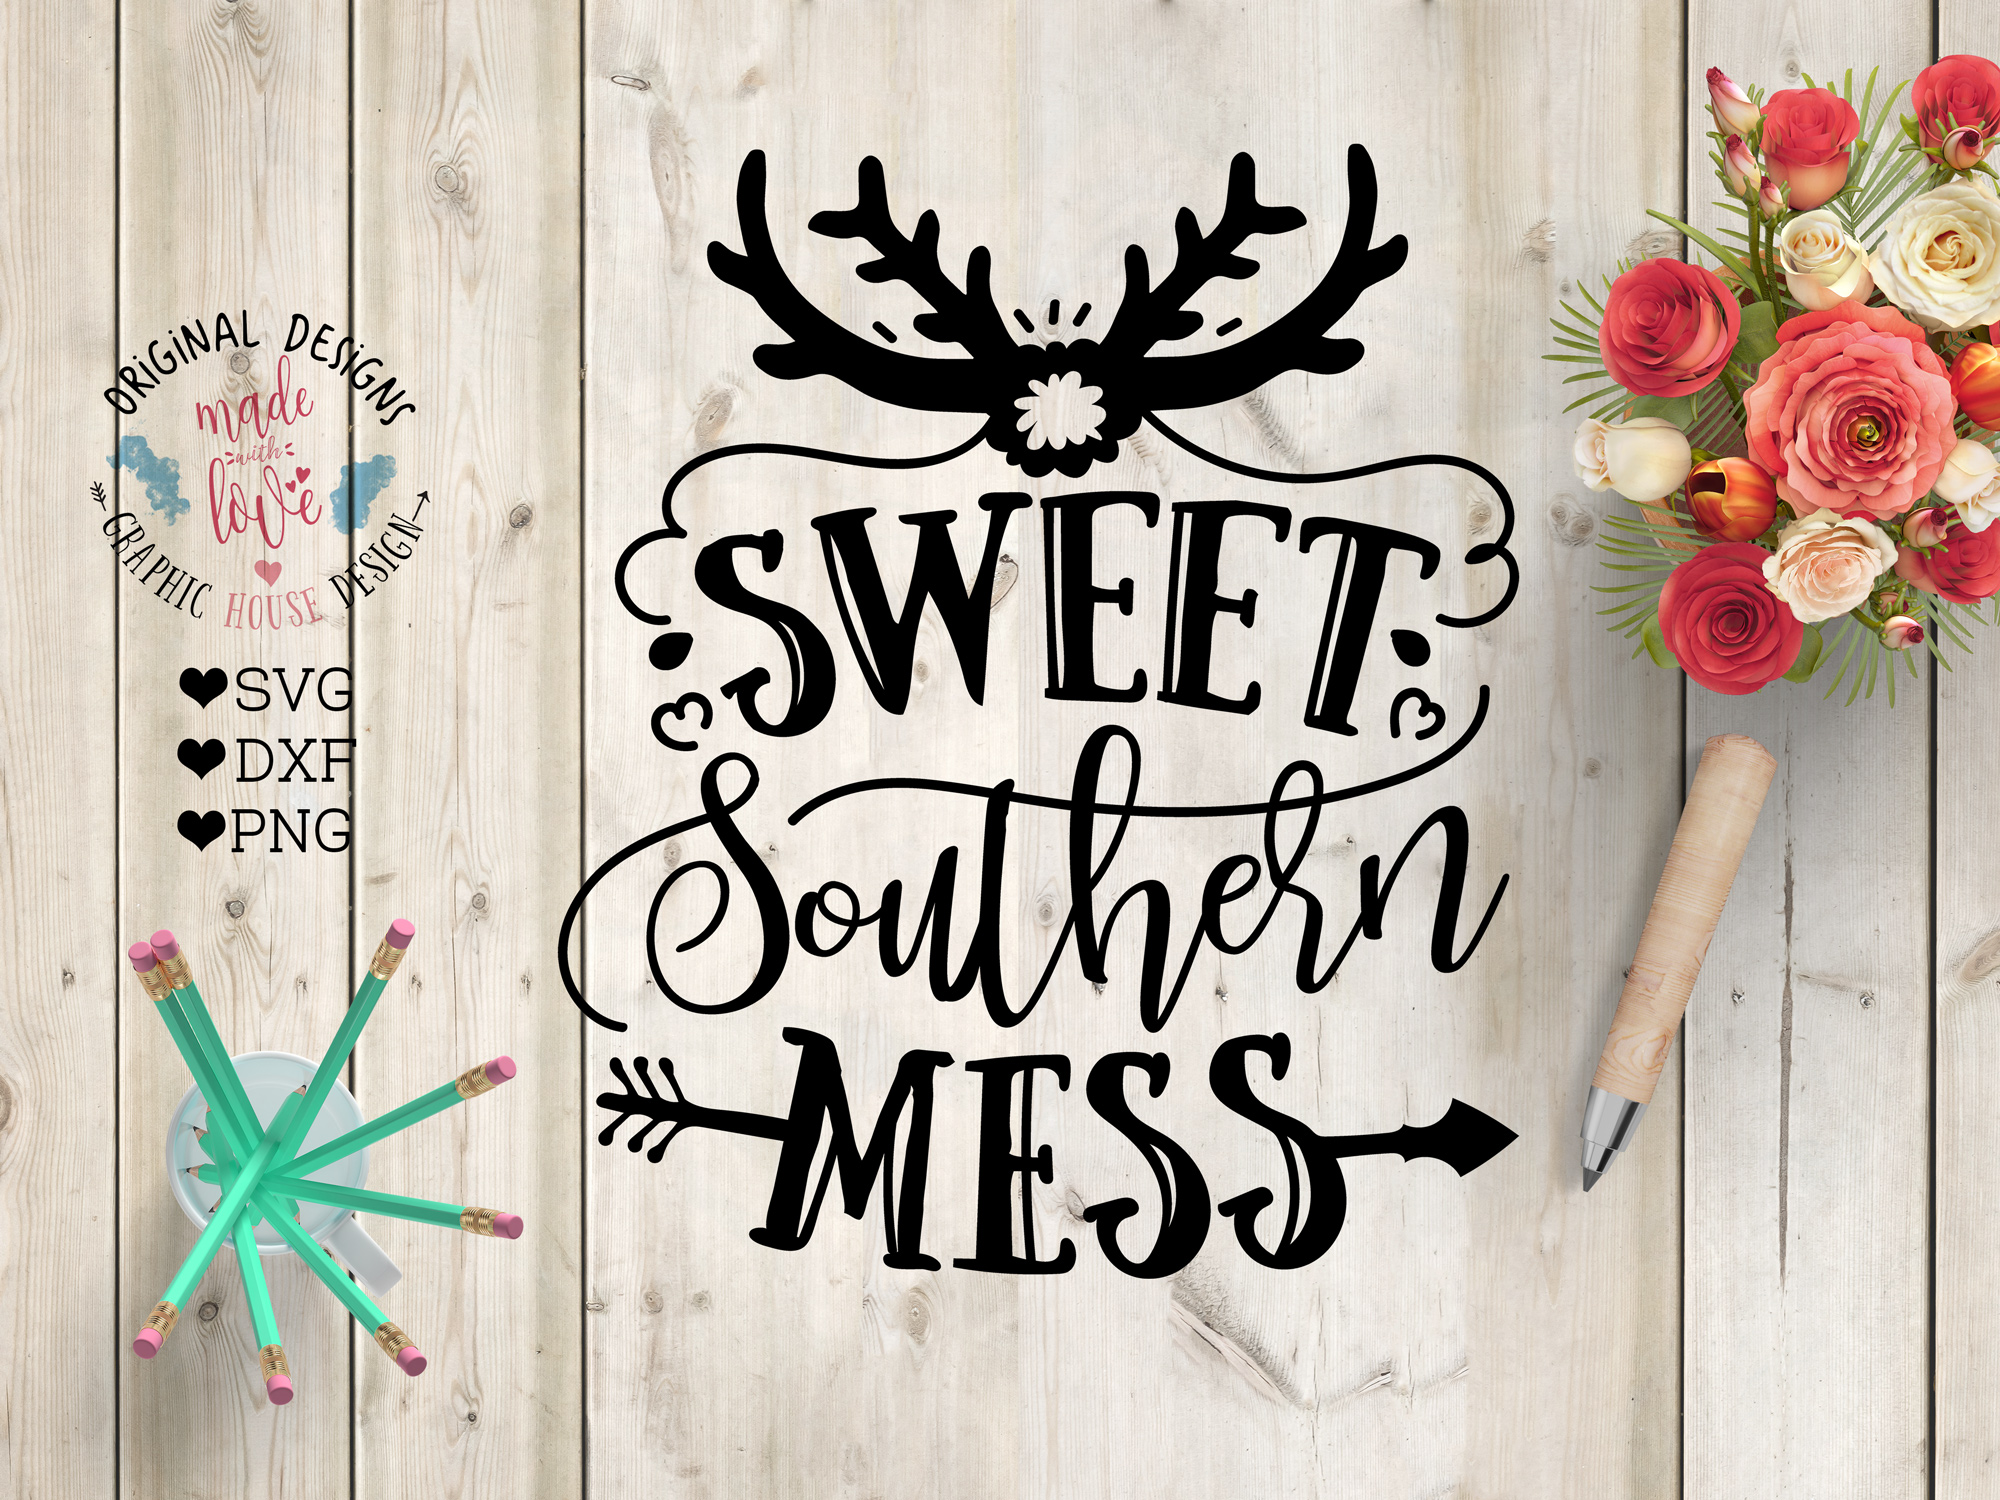 Sweet Southern Mess Cut File SVG, DXF, PNG example image 1